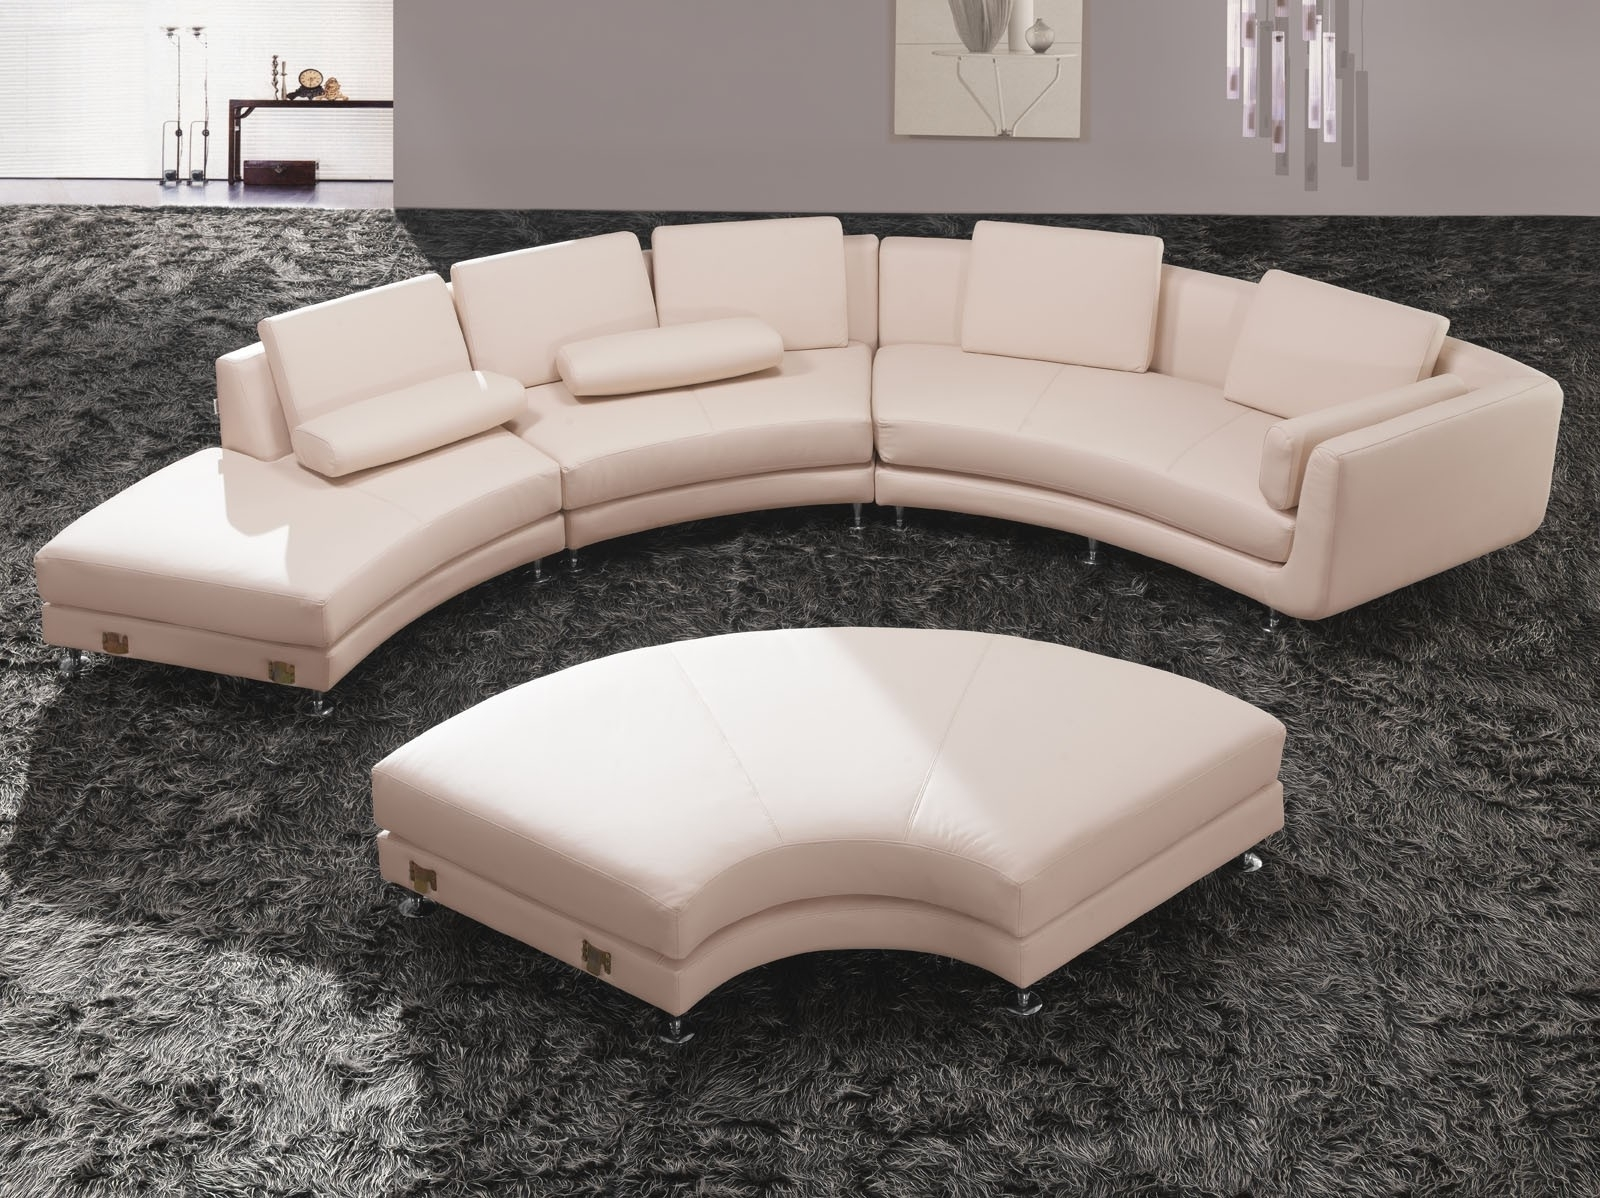 Sofa : Glamorous Round Sectional Sofa Bed Curved Leather Tufted Intended For Newest Round Sofas (View 7 of 15)